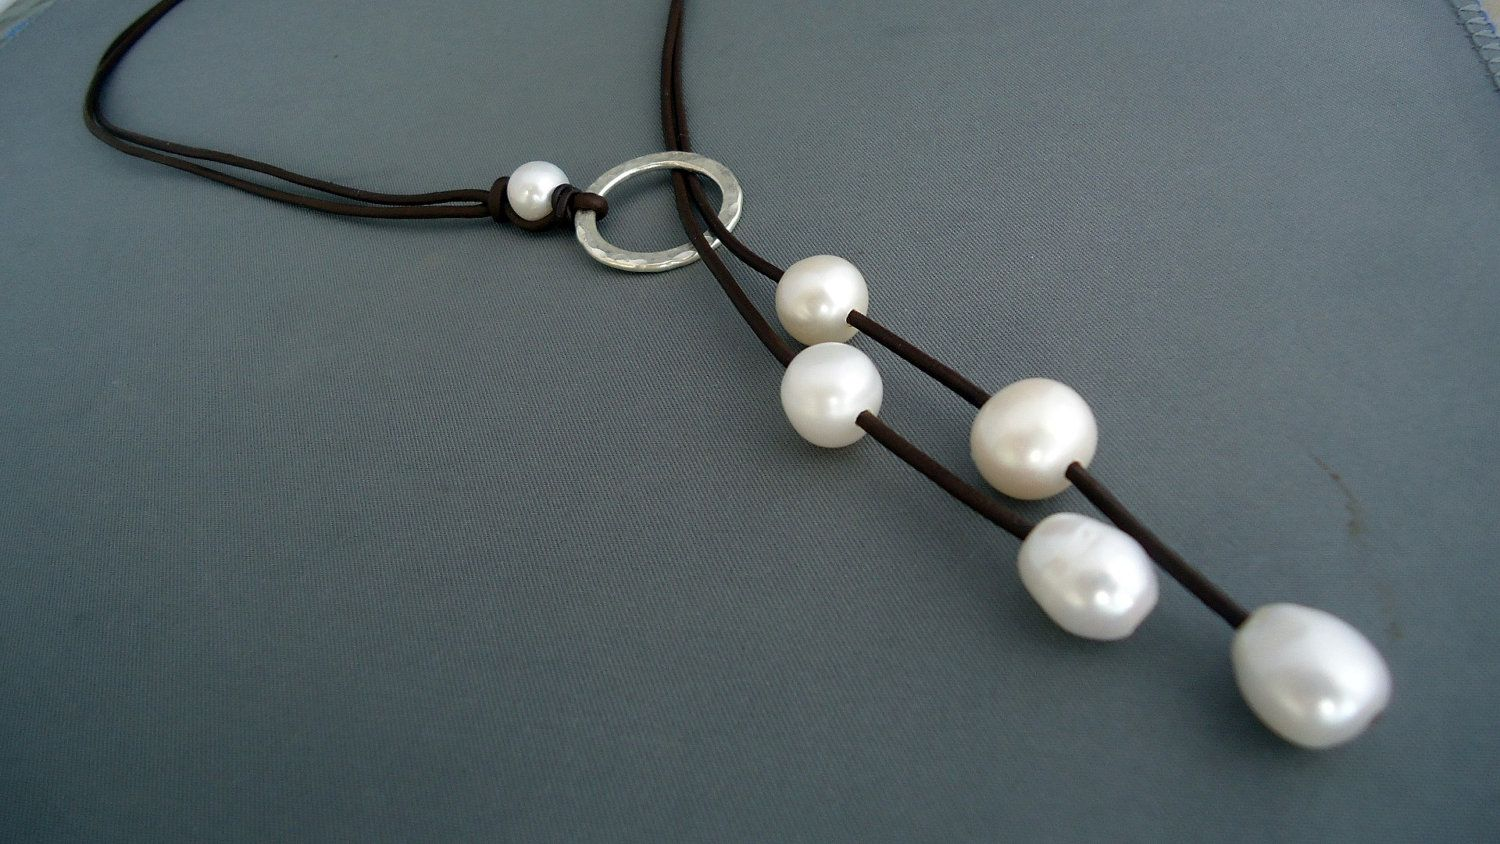 Leather and pearls Hammered sterling silver lariat by iseadesigns on etsy